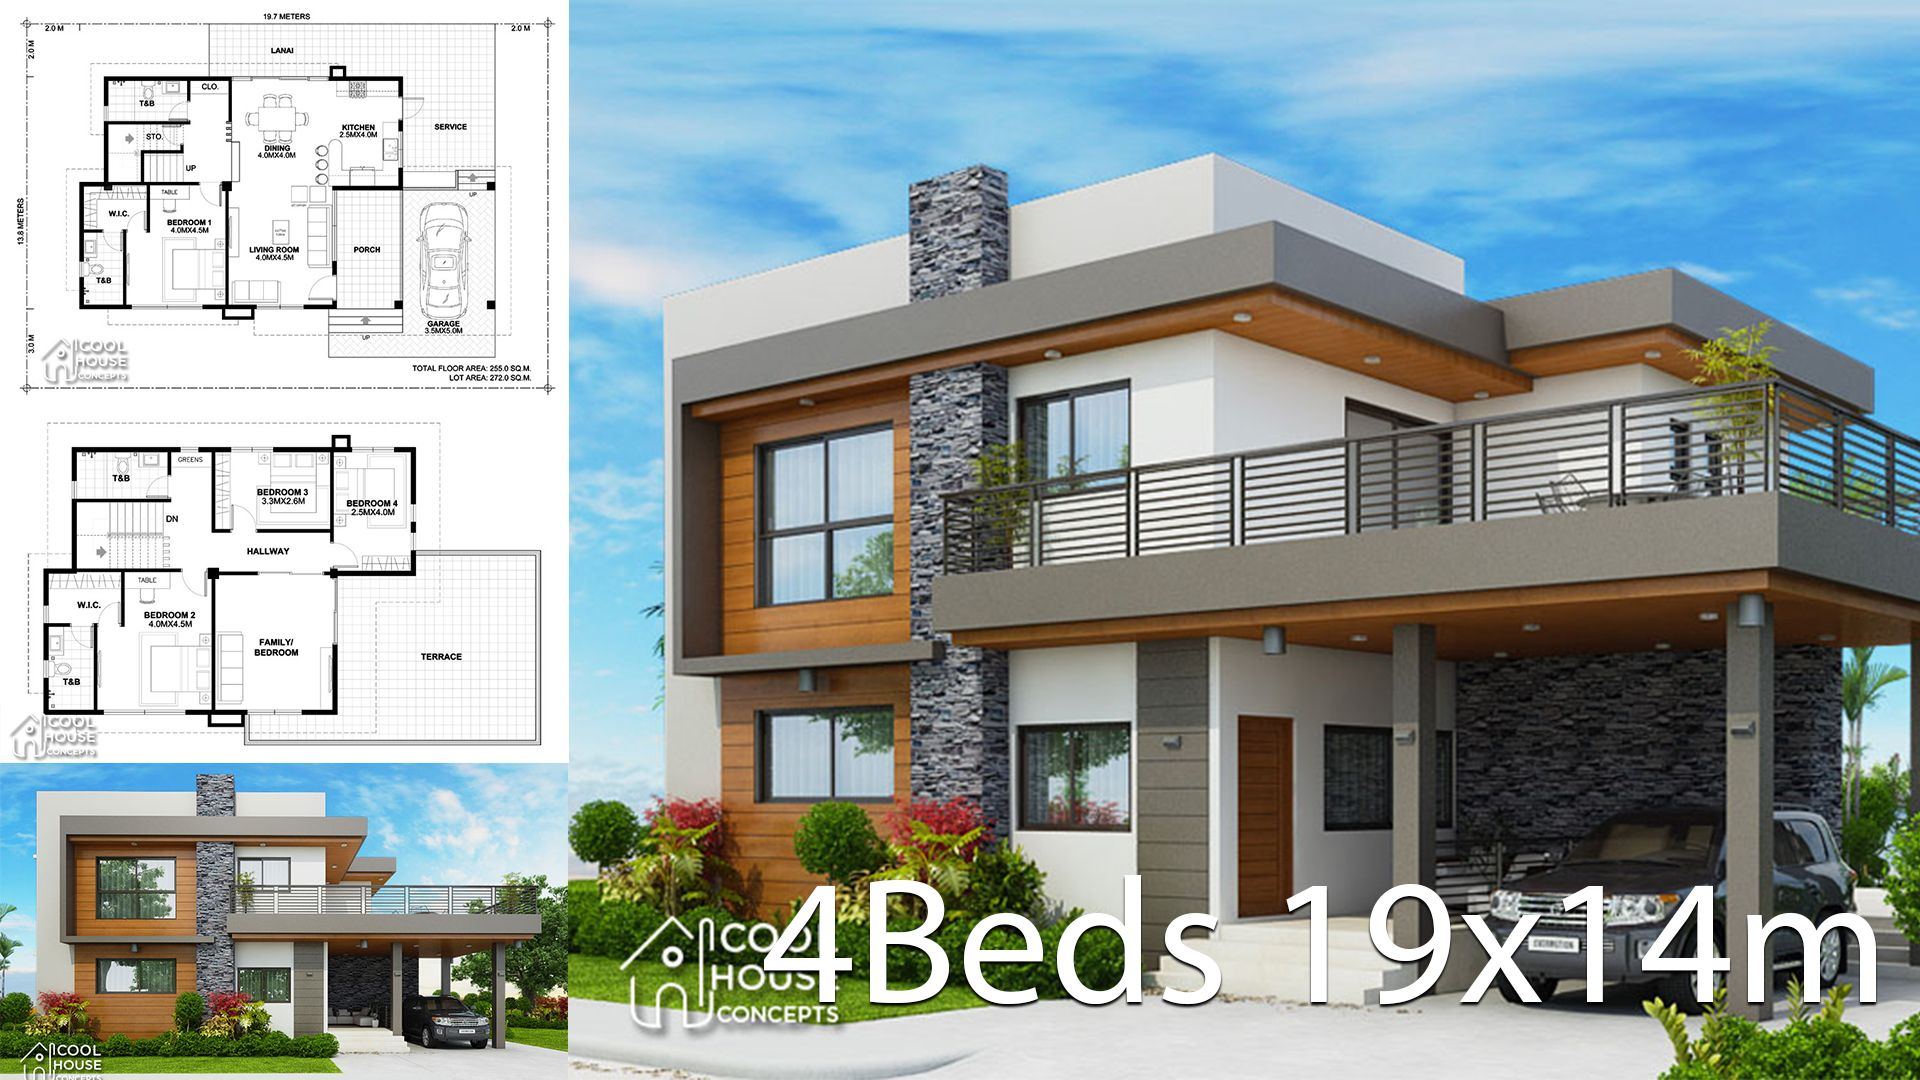 Home Design Plan 19x14m With 4 Bedrooms In 2020 Bungalow House Design Home Design Plan Architect Design House